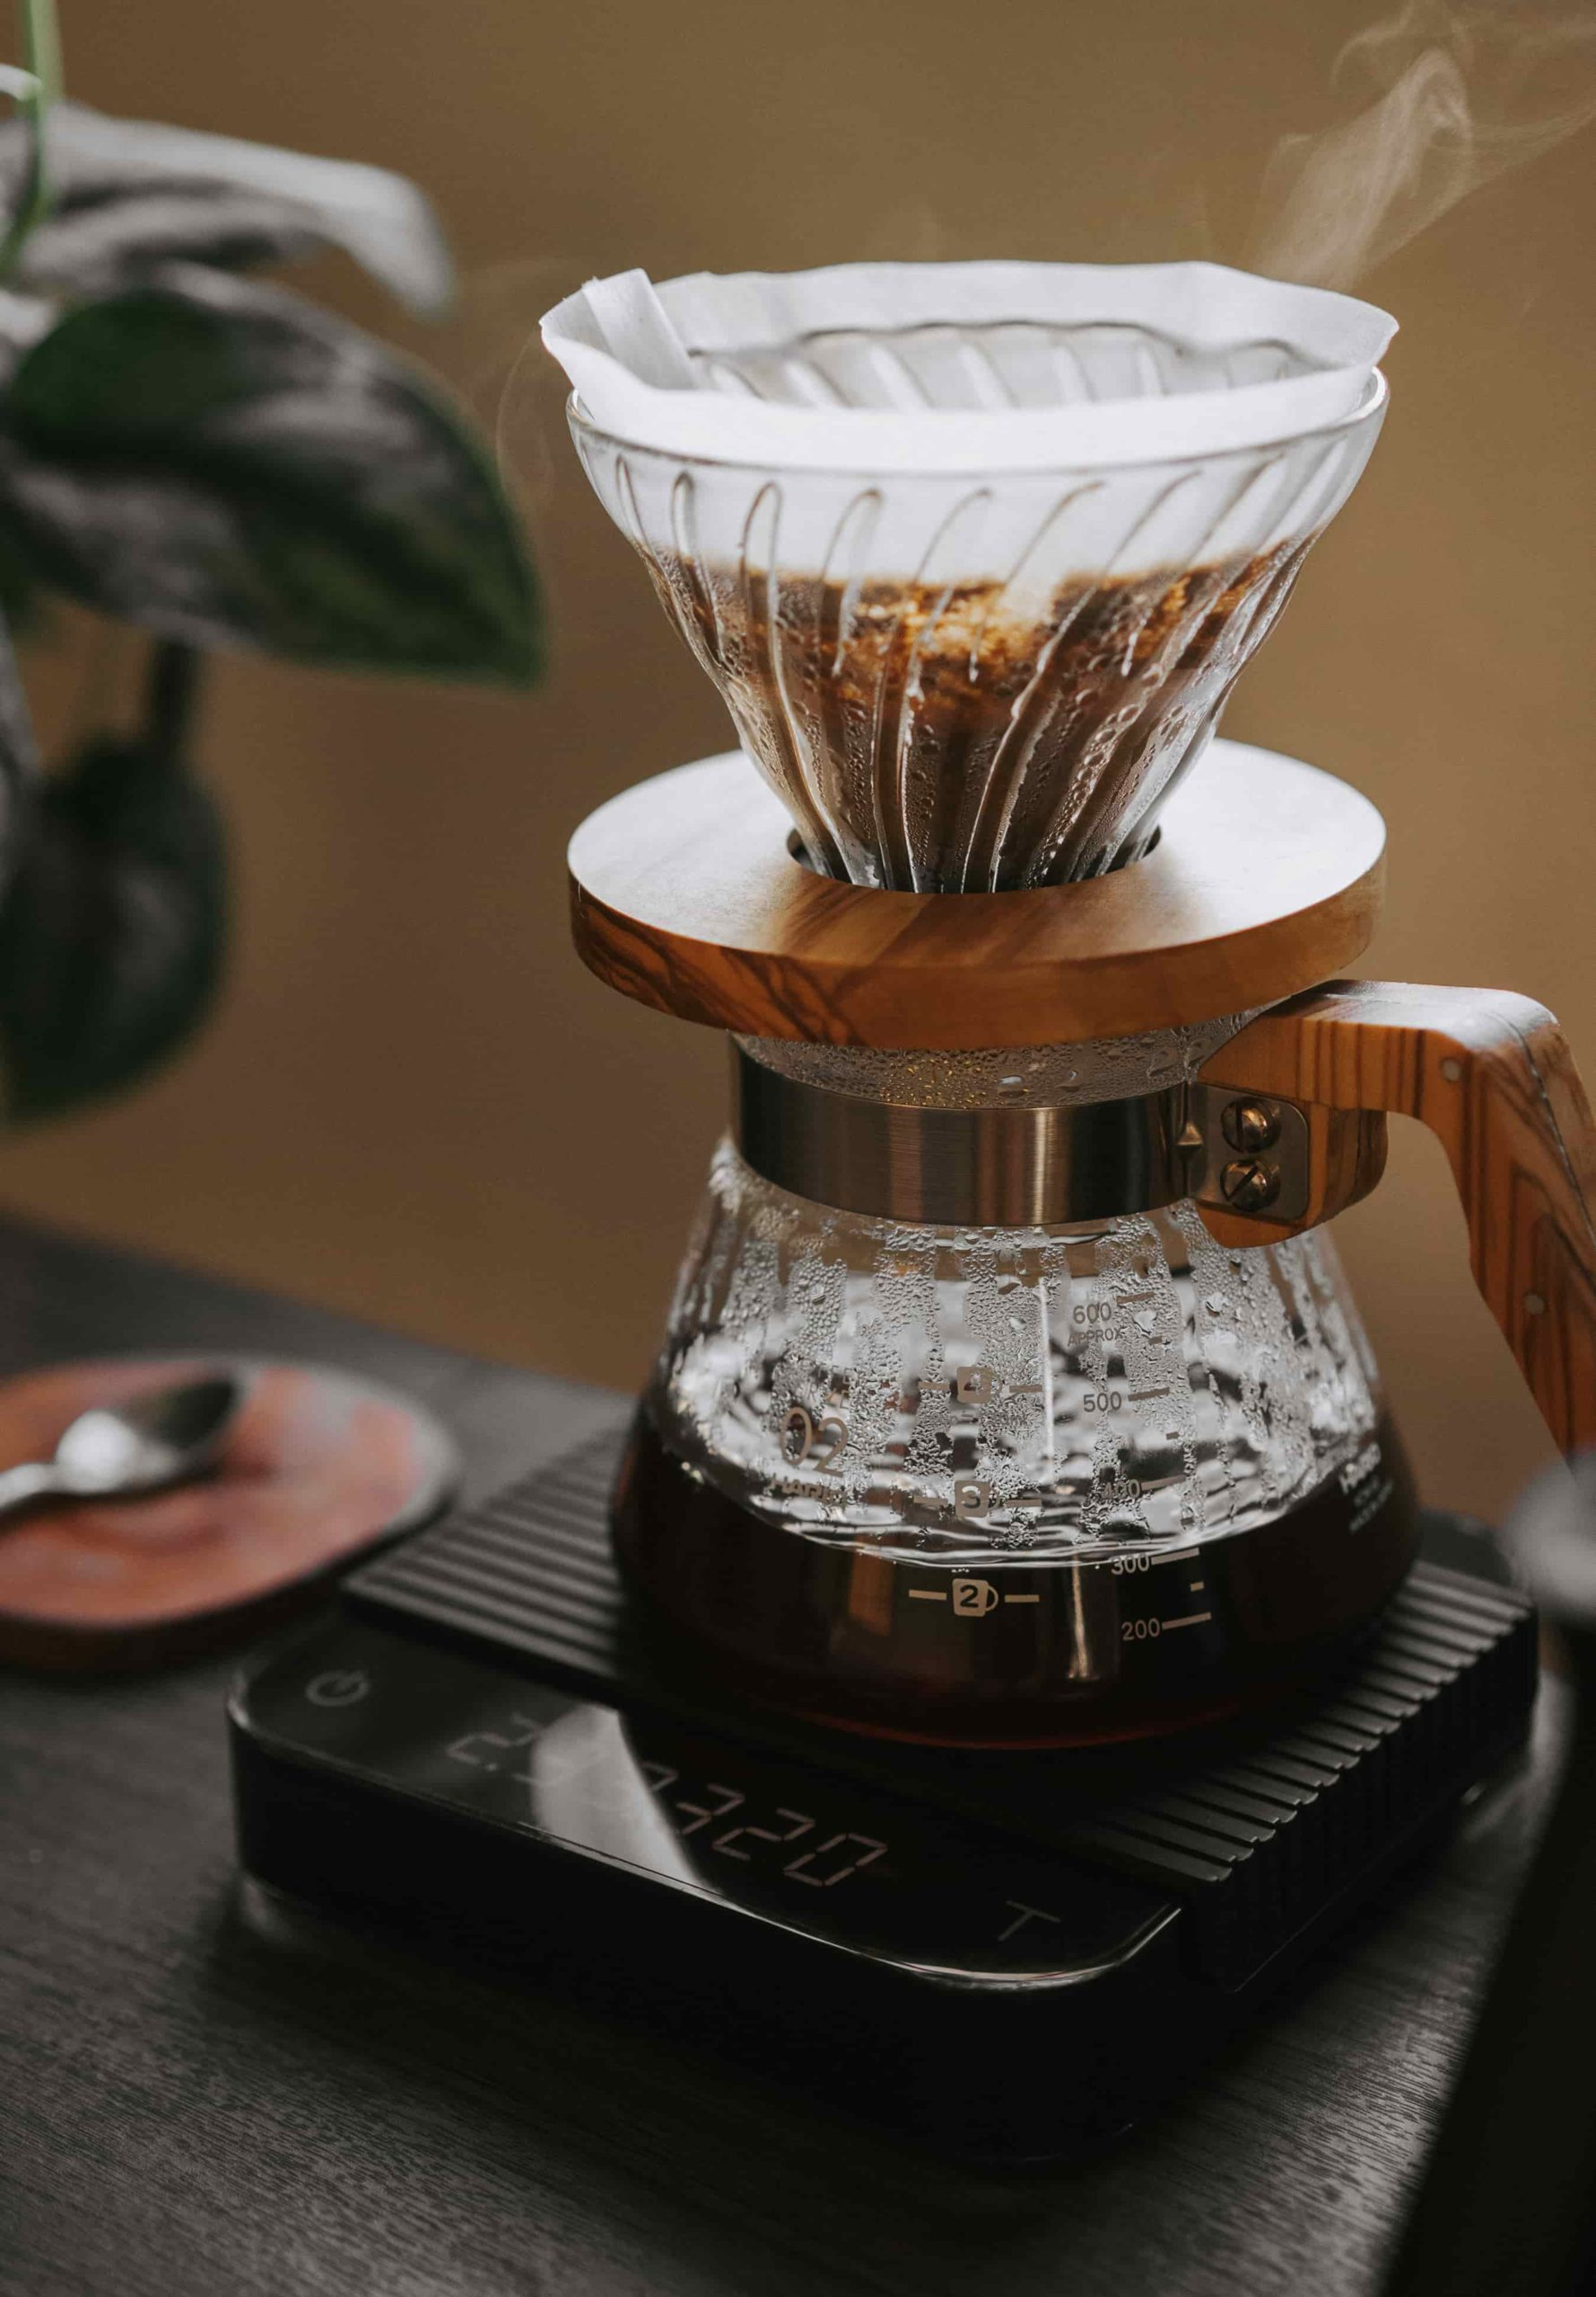 Hario V60 Pour Over Drip Brewing Method Gustos Coffee Puerto Rico Yauco